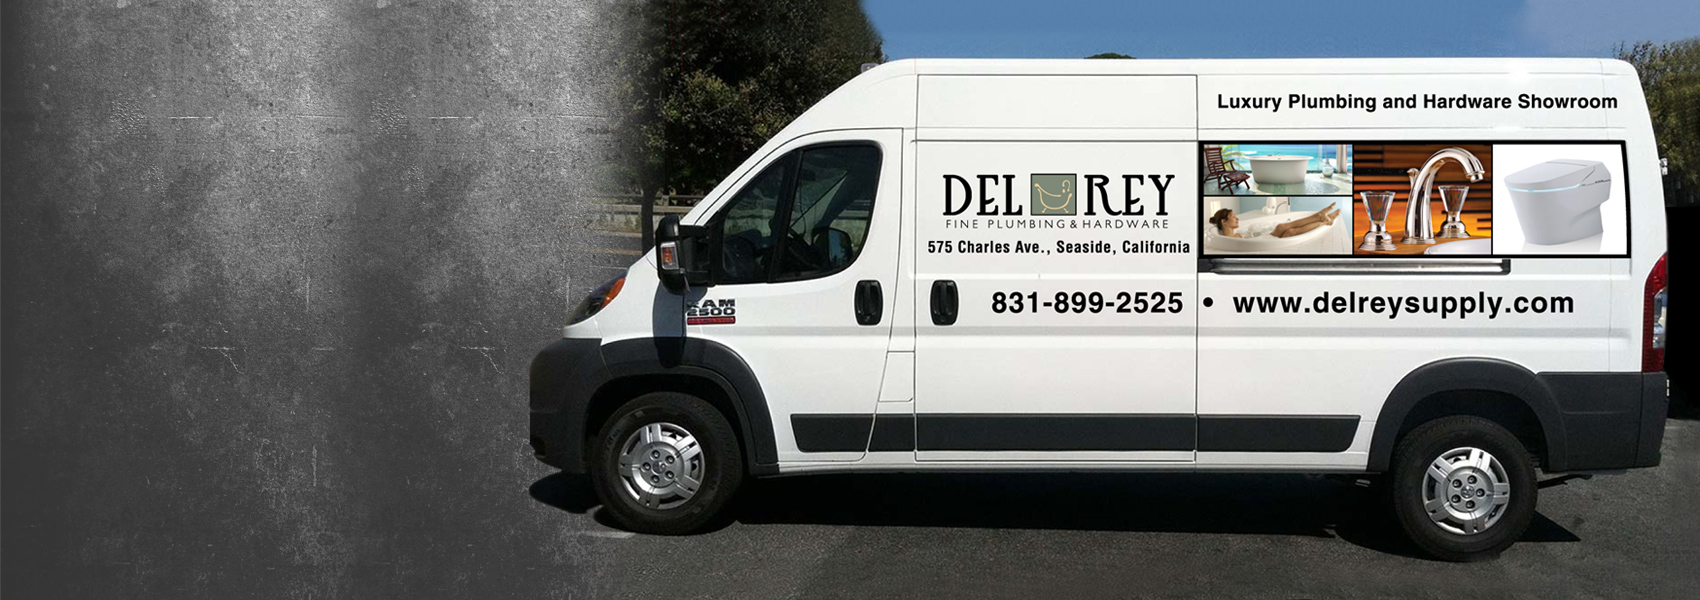 Del Rey truck, Seaside, CA